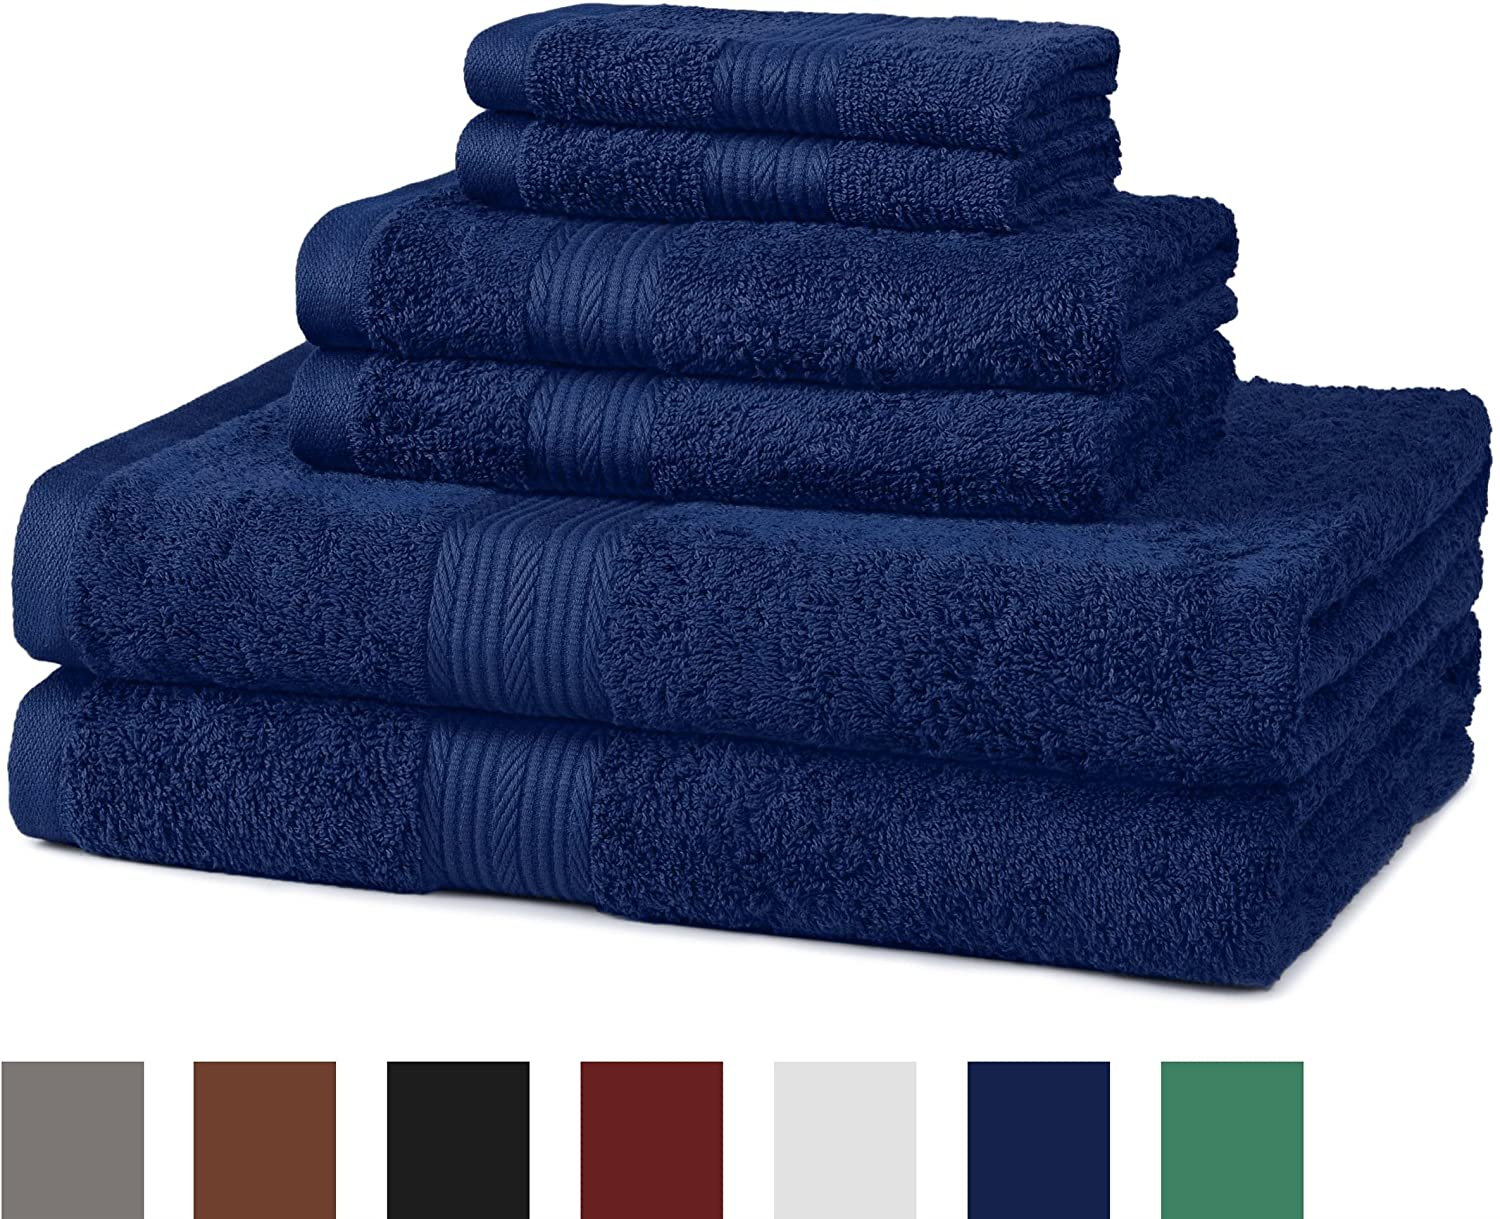 AmazonBasics Fade-Resistant Cotton 6-Piece Towel Set, Navy Blue